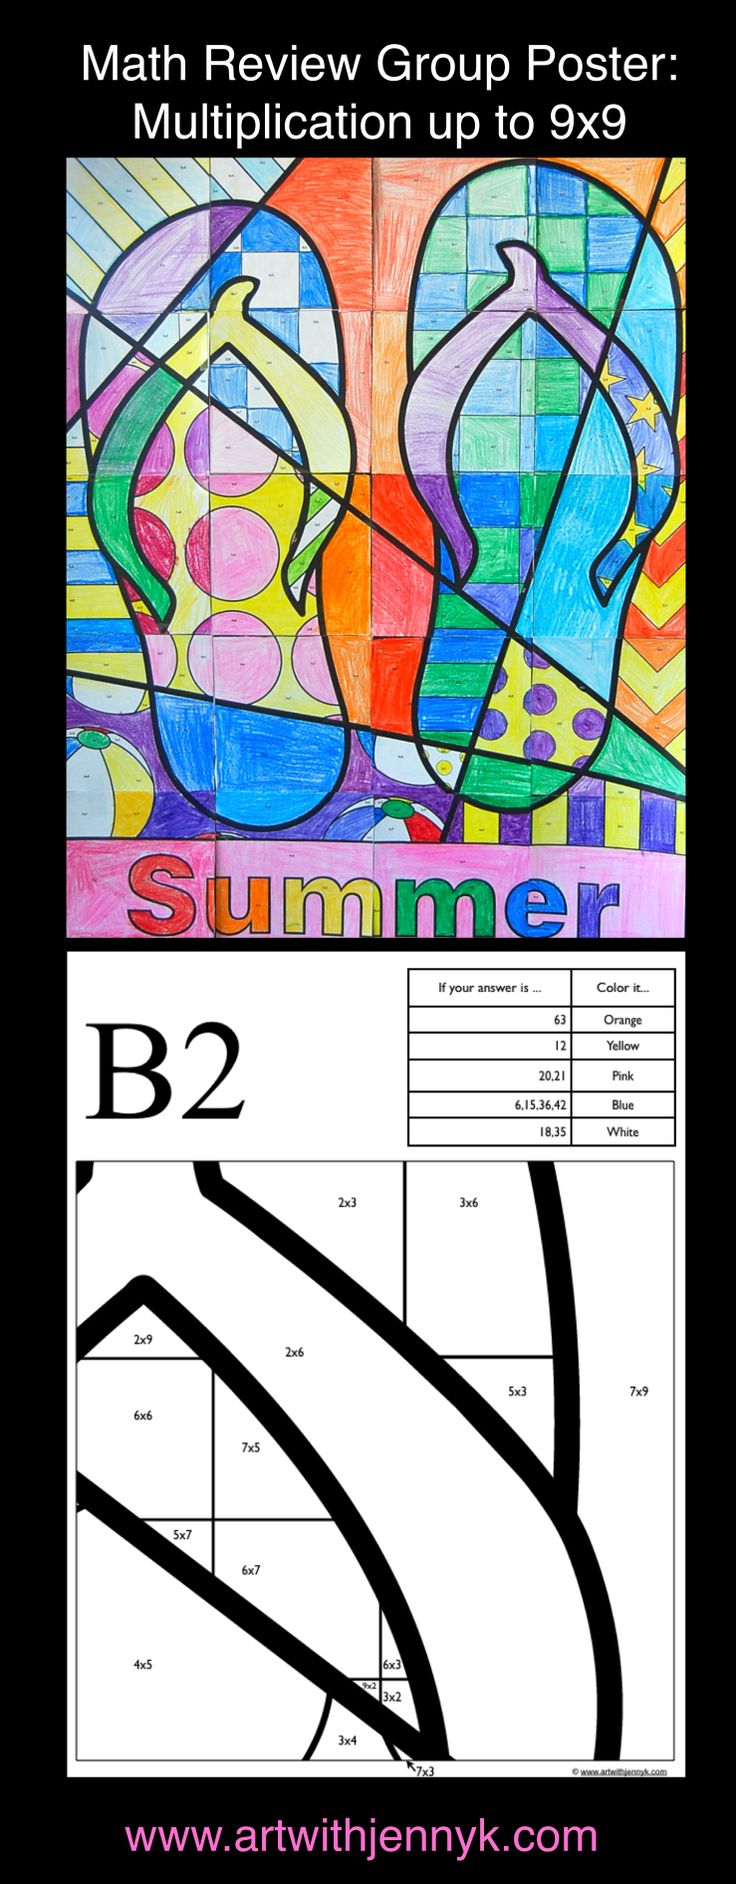 Use art to review math! The colors on every page of this large, classroom mosaic poster are assigned based on the answers to math problems written on each sheet. Multiplication through the 9s times tables is reviewed on this poster. In the end you'll have a beautiful summer poster to display in your room or at your school!